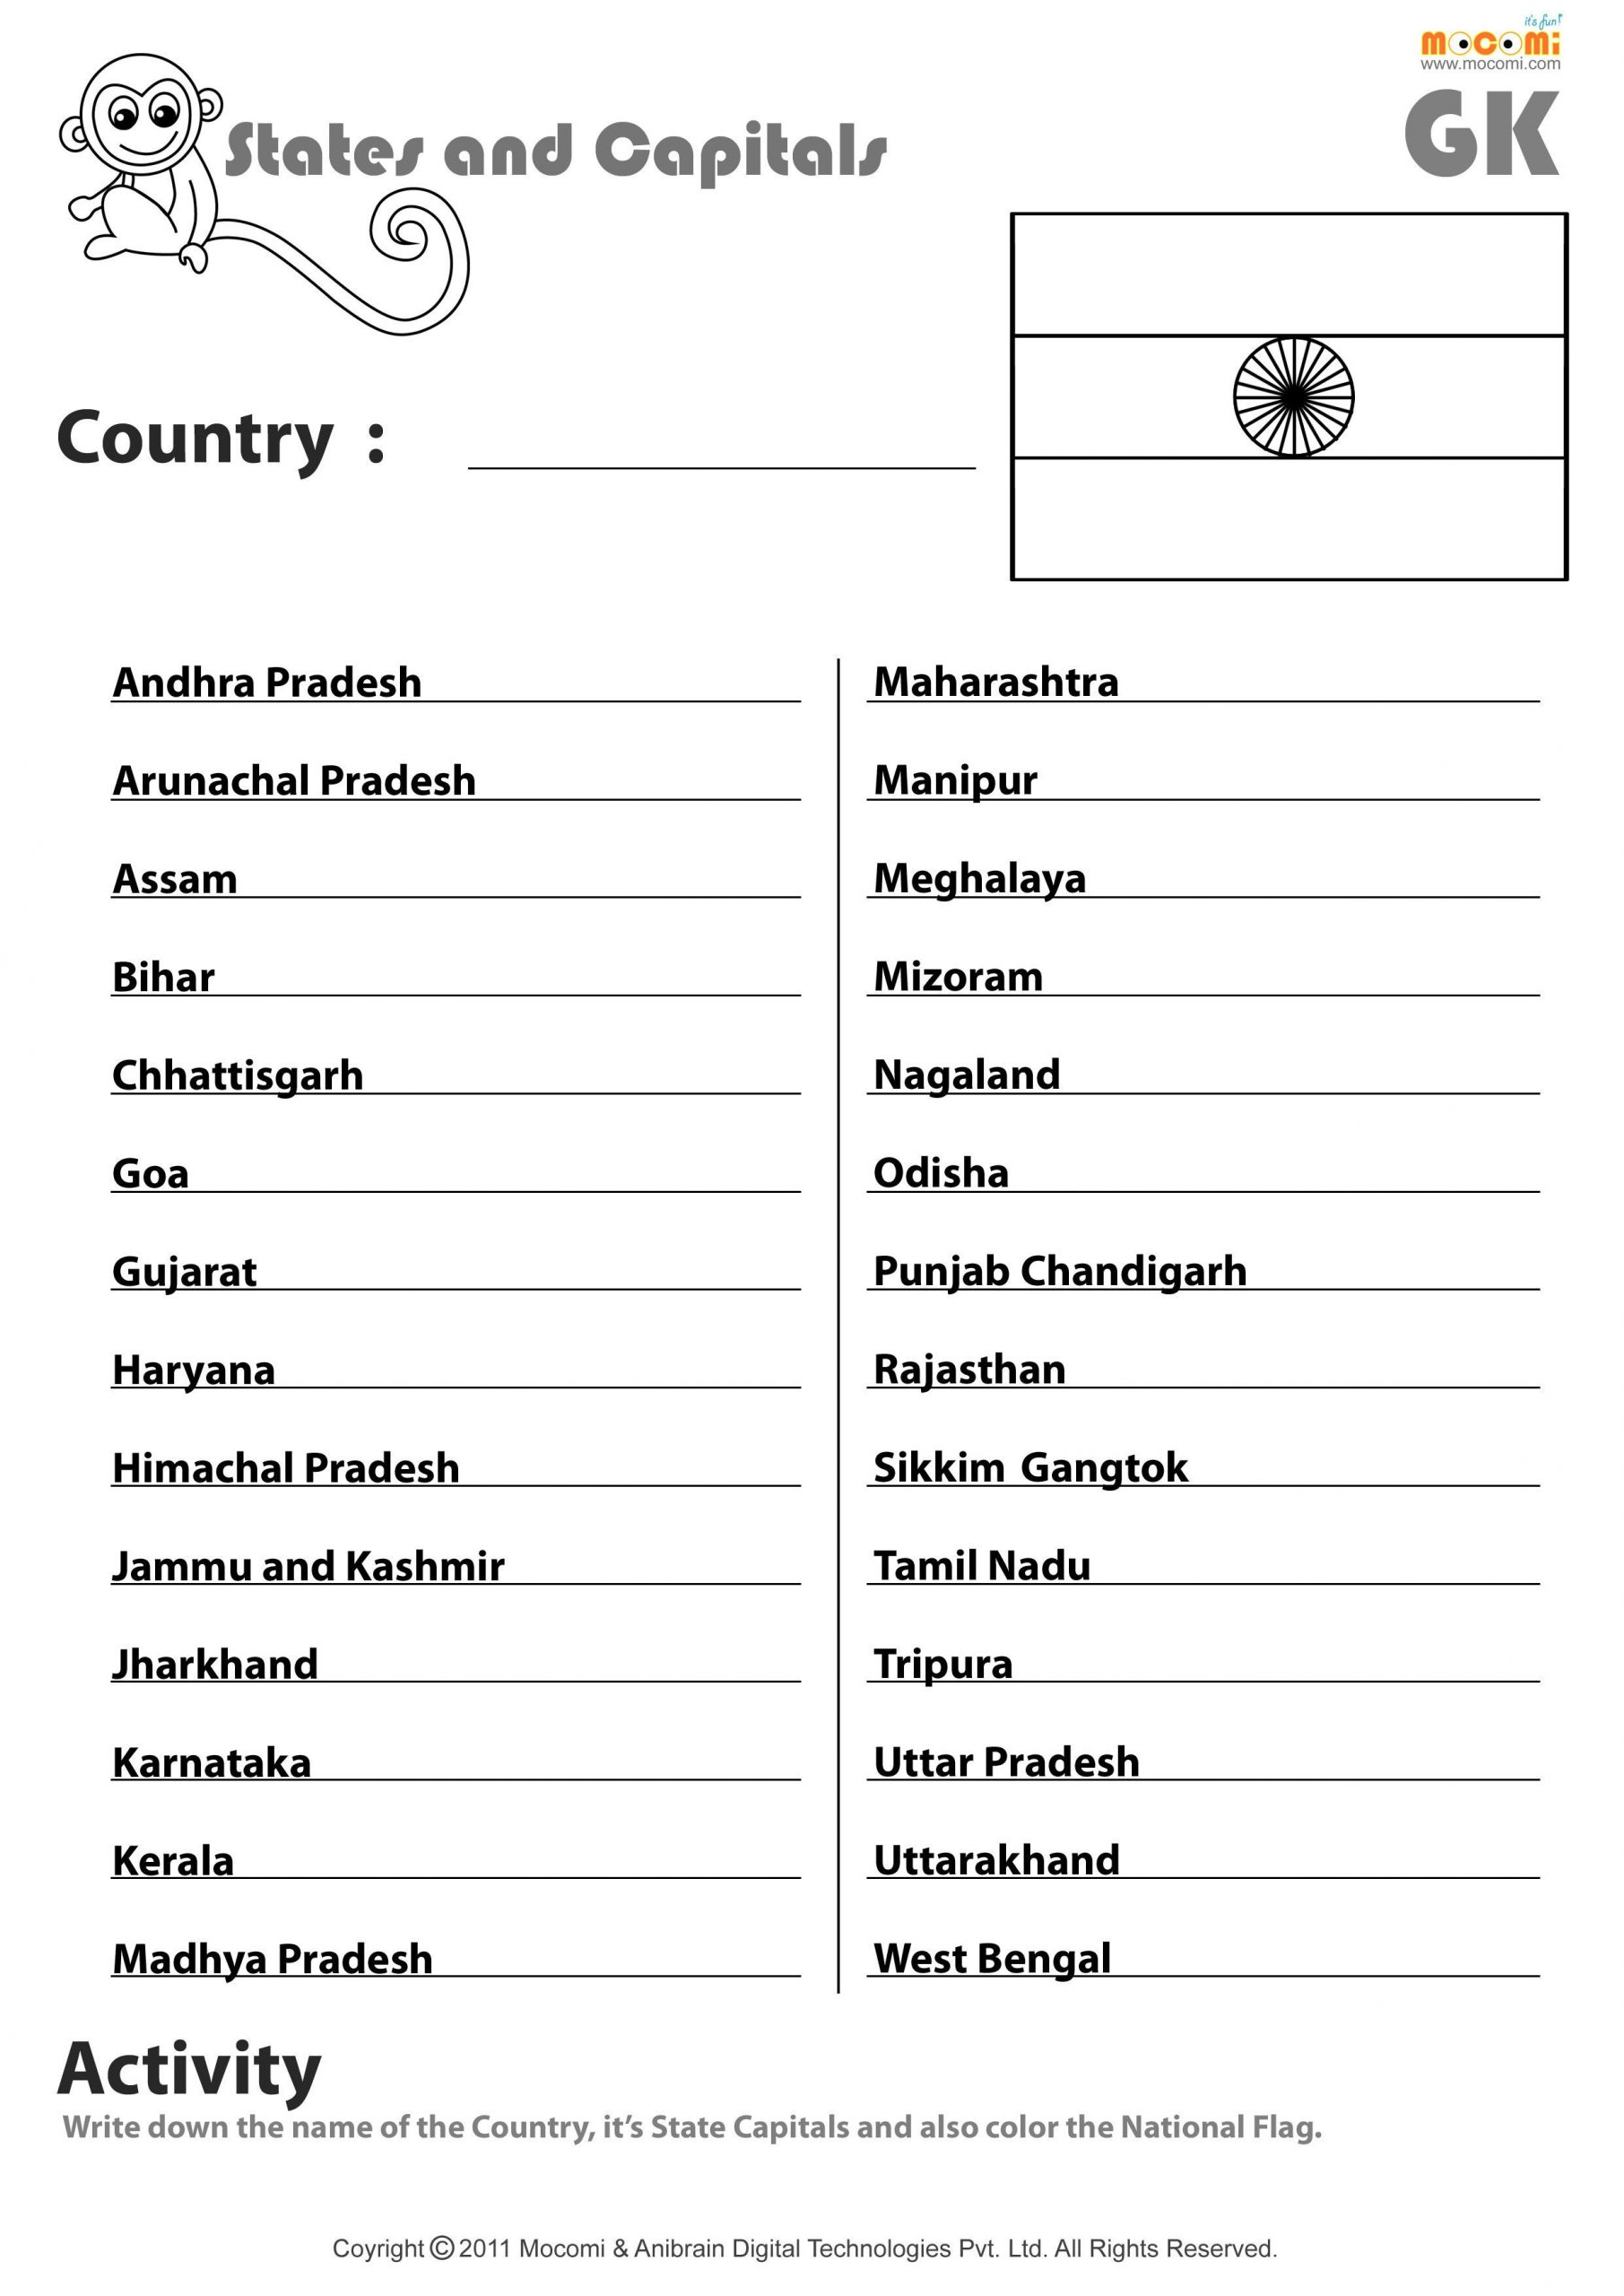 States and Capitals Quiz Printable Identifying State Capitals Worksheet